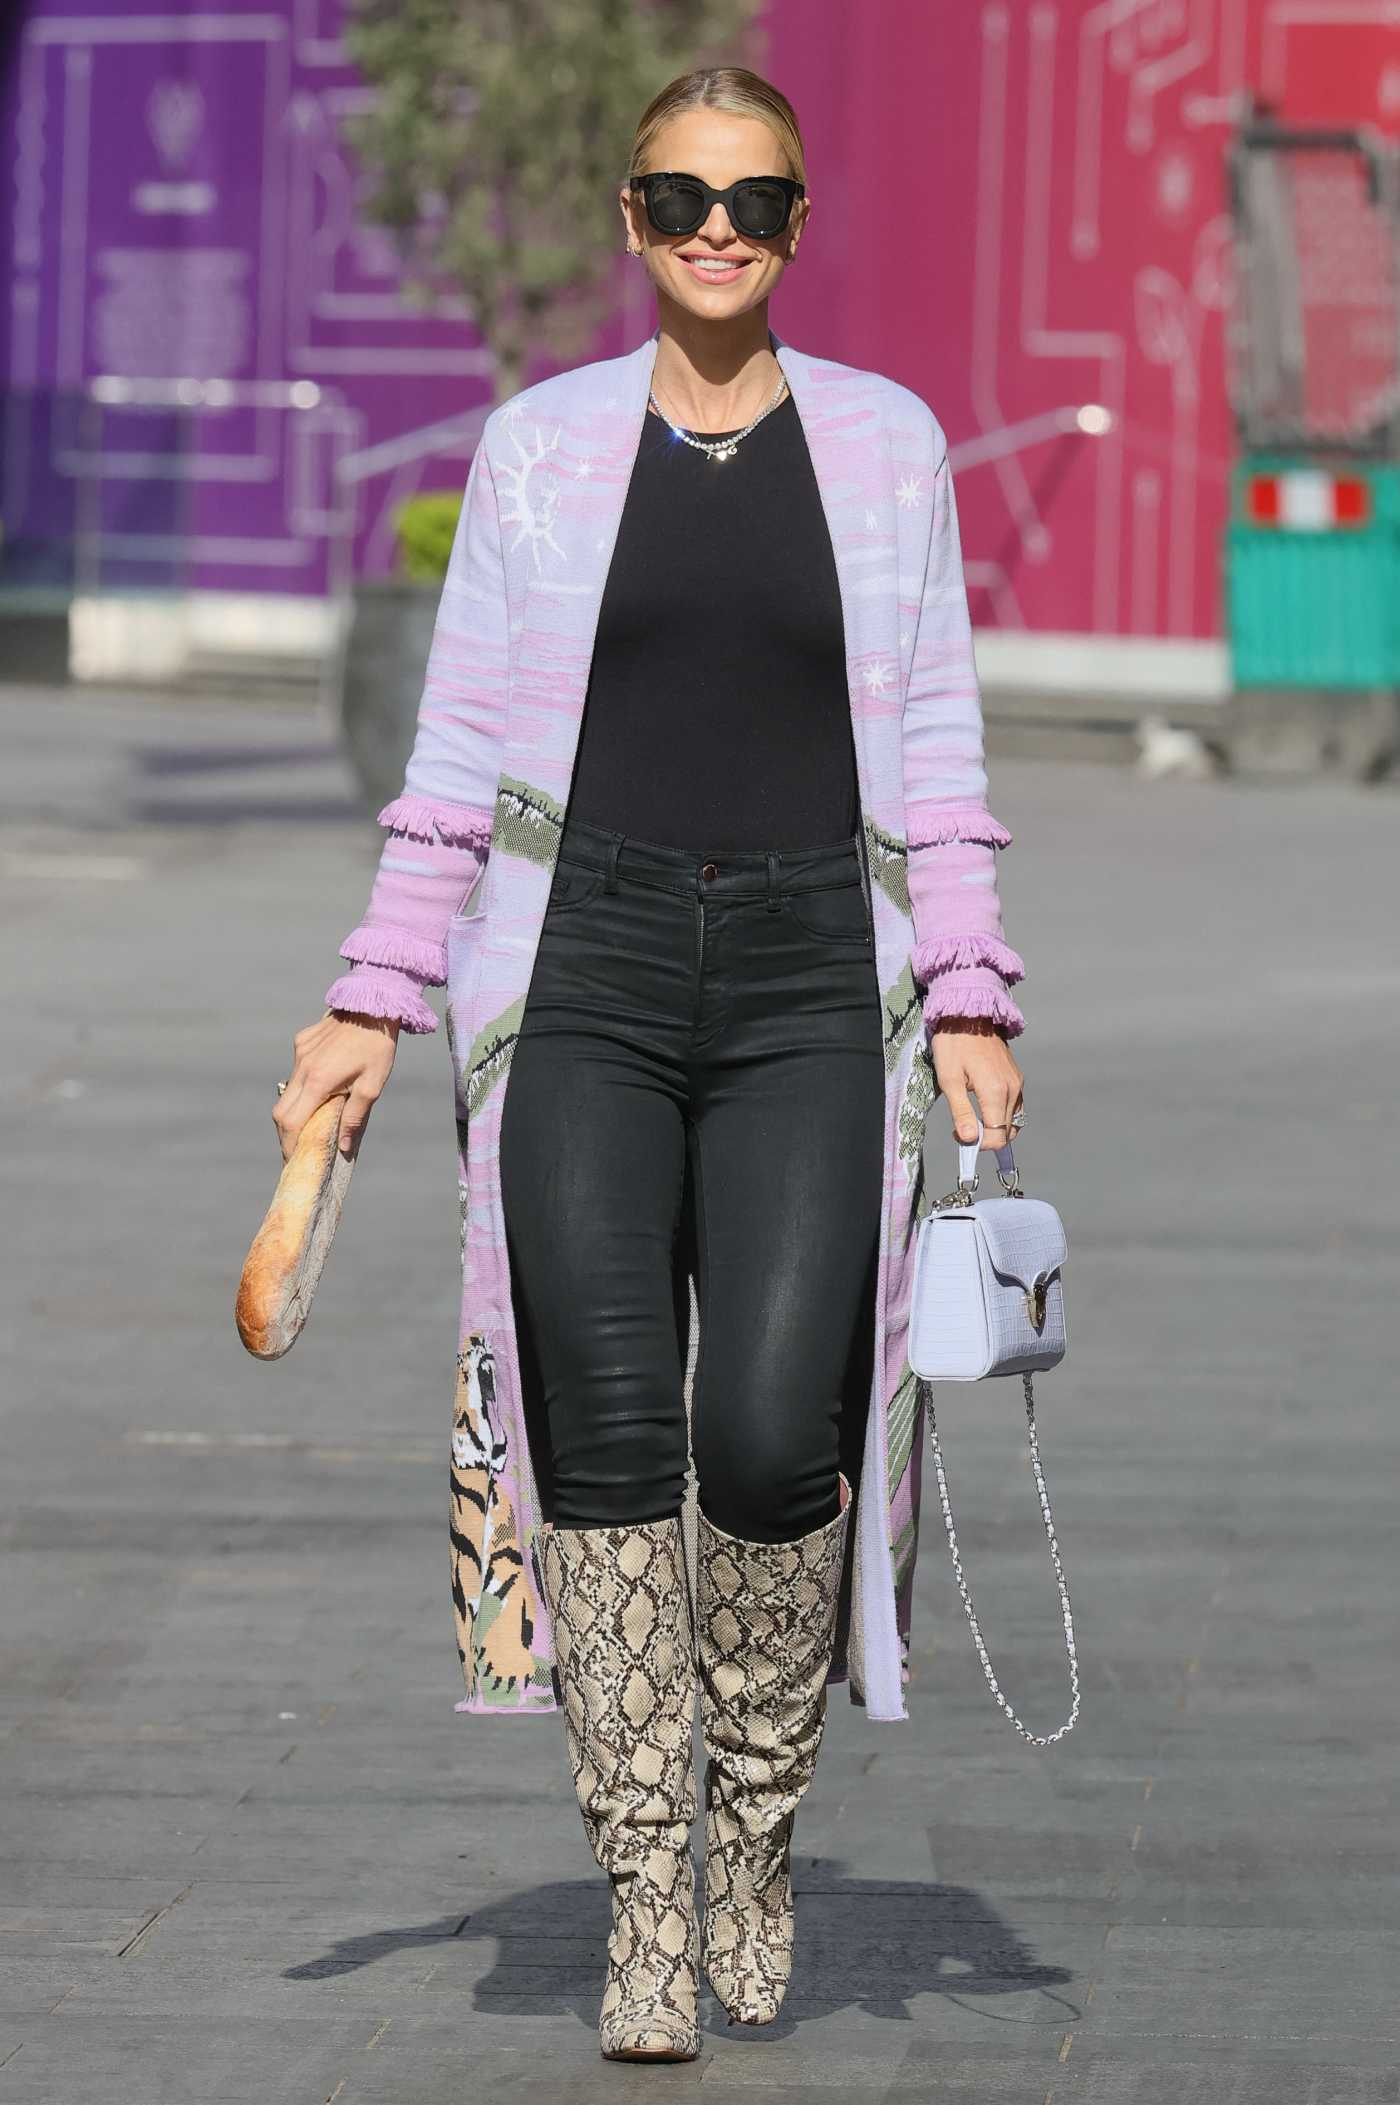 Vogue Williams in a Lilac Cardigan Steps Out for Her Weekly Radio Appearance in London 05/09/2021